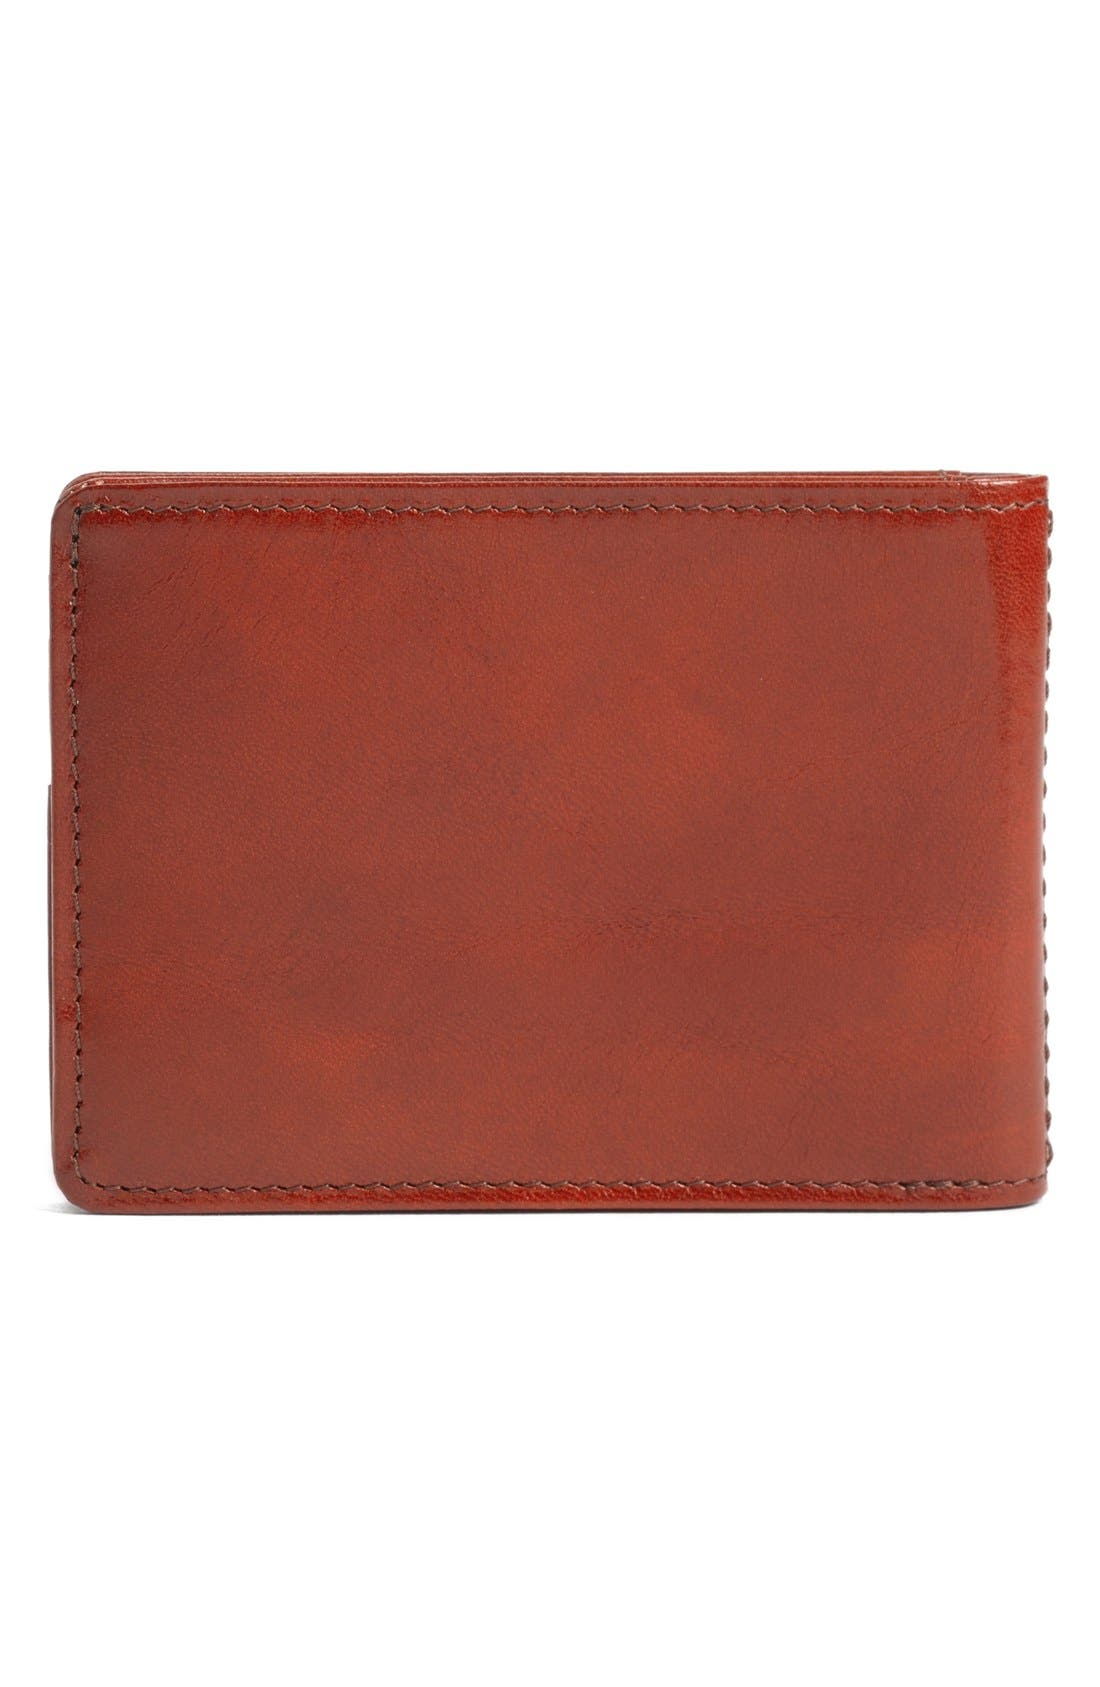 Small Bifold Wallet,                             Alternate thumbnail 15, color,